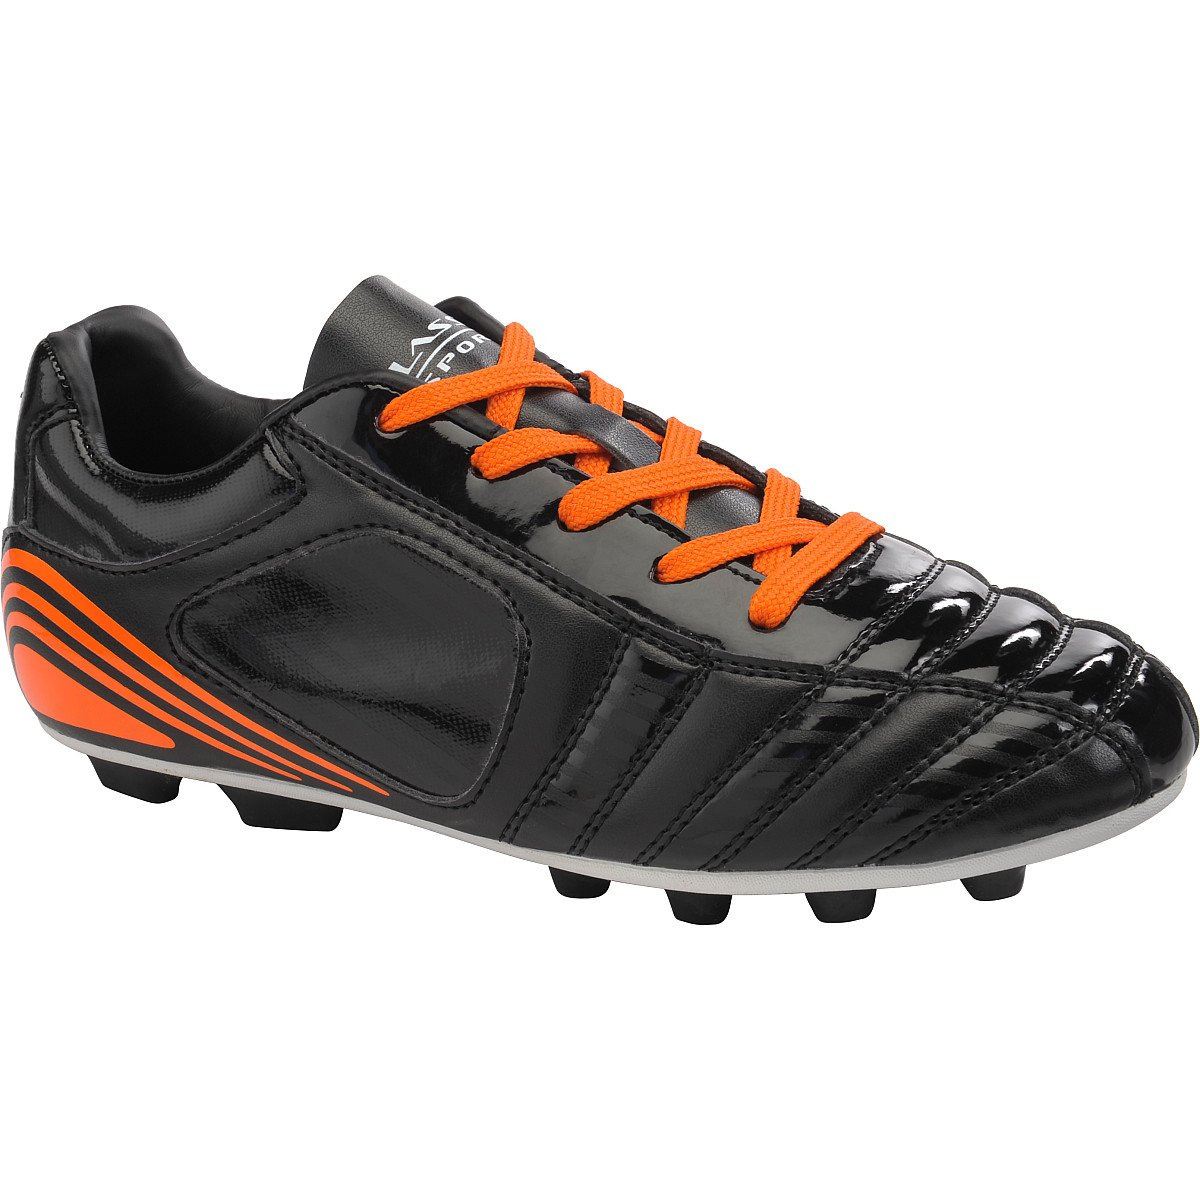 Click image to open expanded view Classic Sport Low Soccer Cleats, Black/Orange, Rubber Molded Dual Cleat Design, Padded Collar